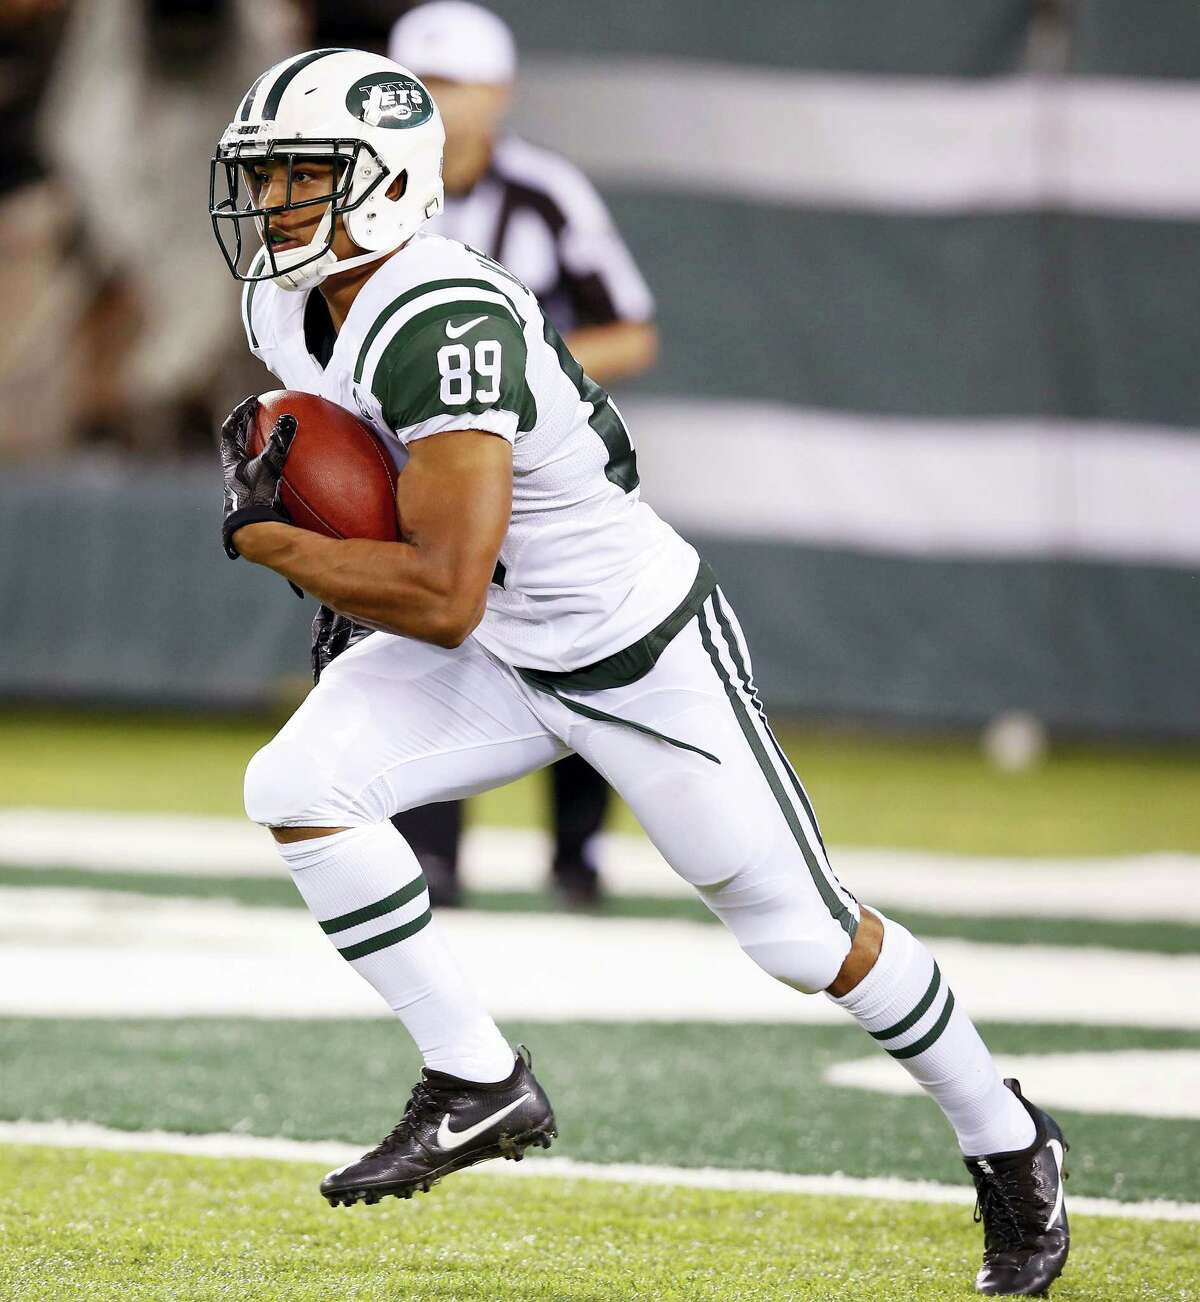 New York Jets wide receiver Jalin Marshall.